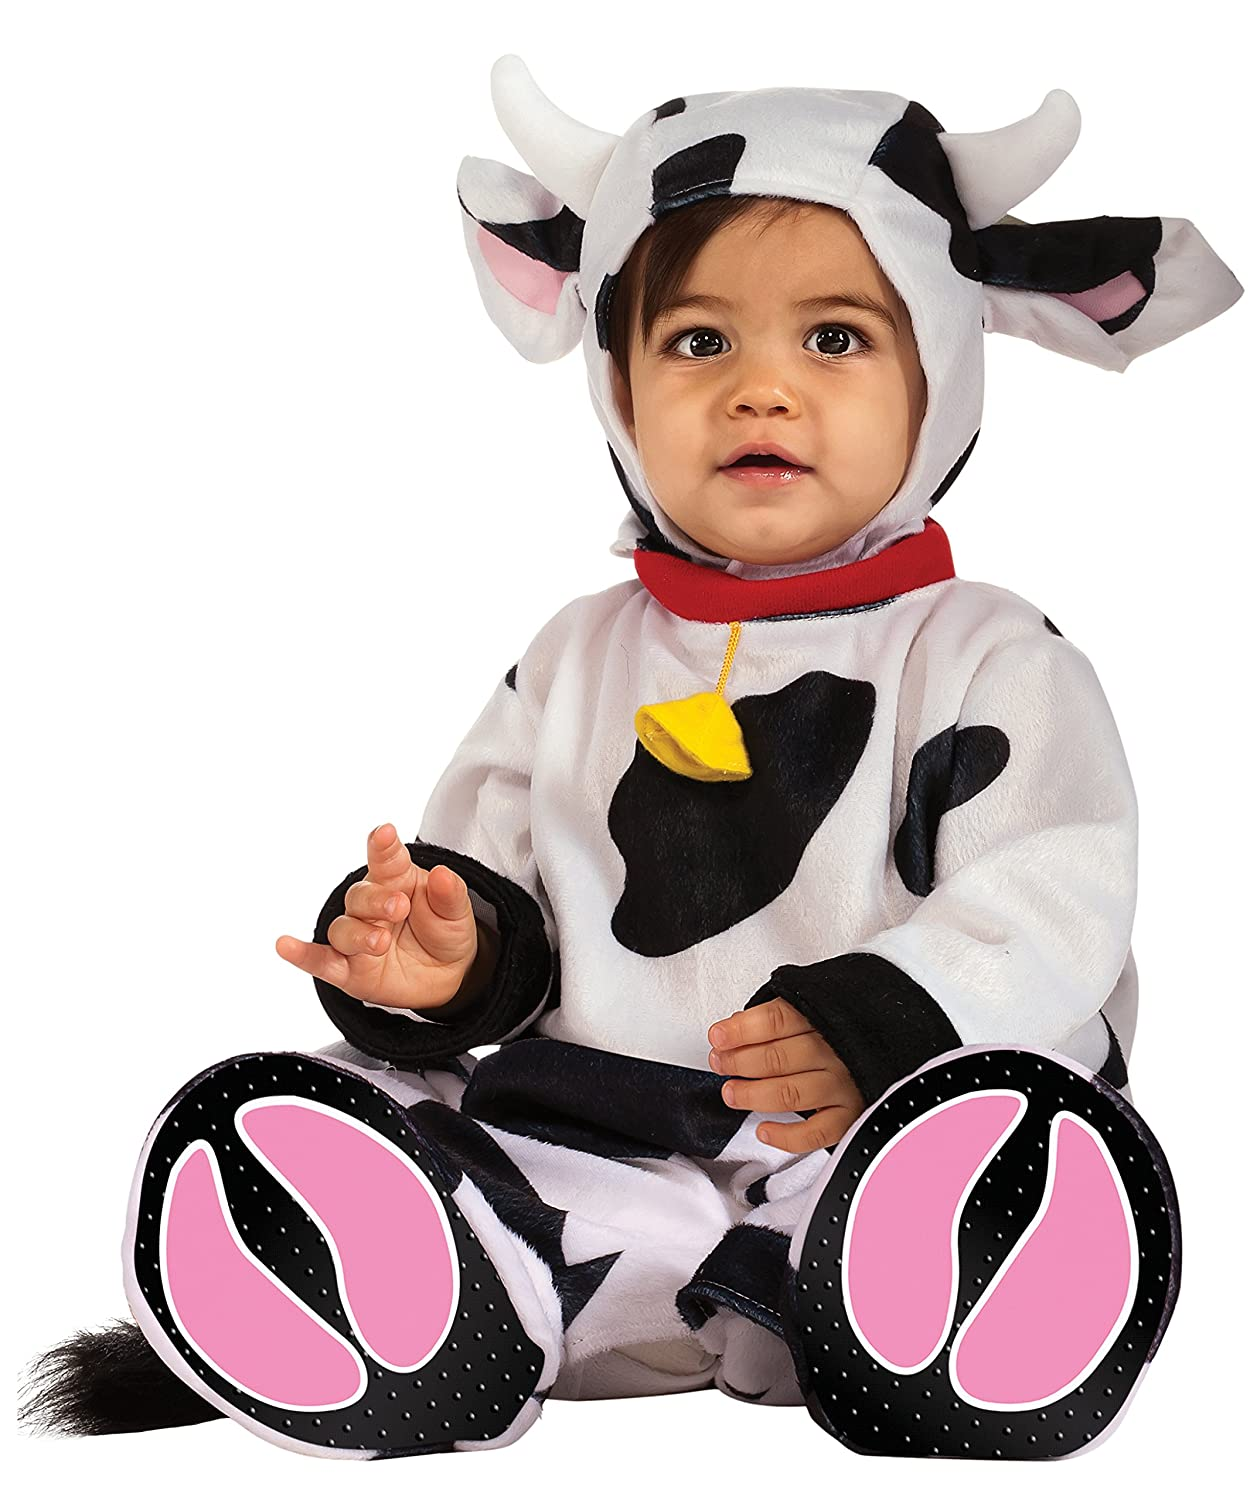 Cuddly Jungle Mr. Moo Cow Romper Costume